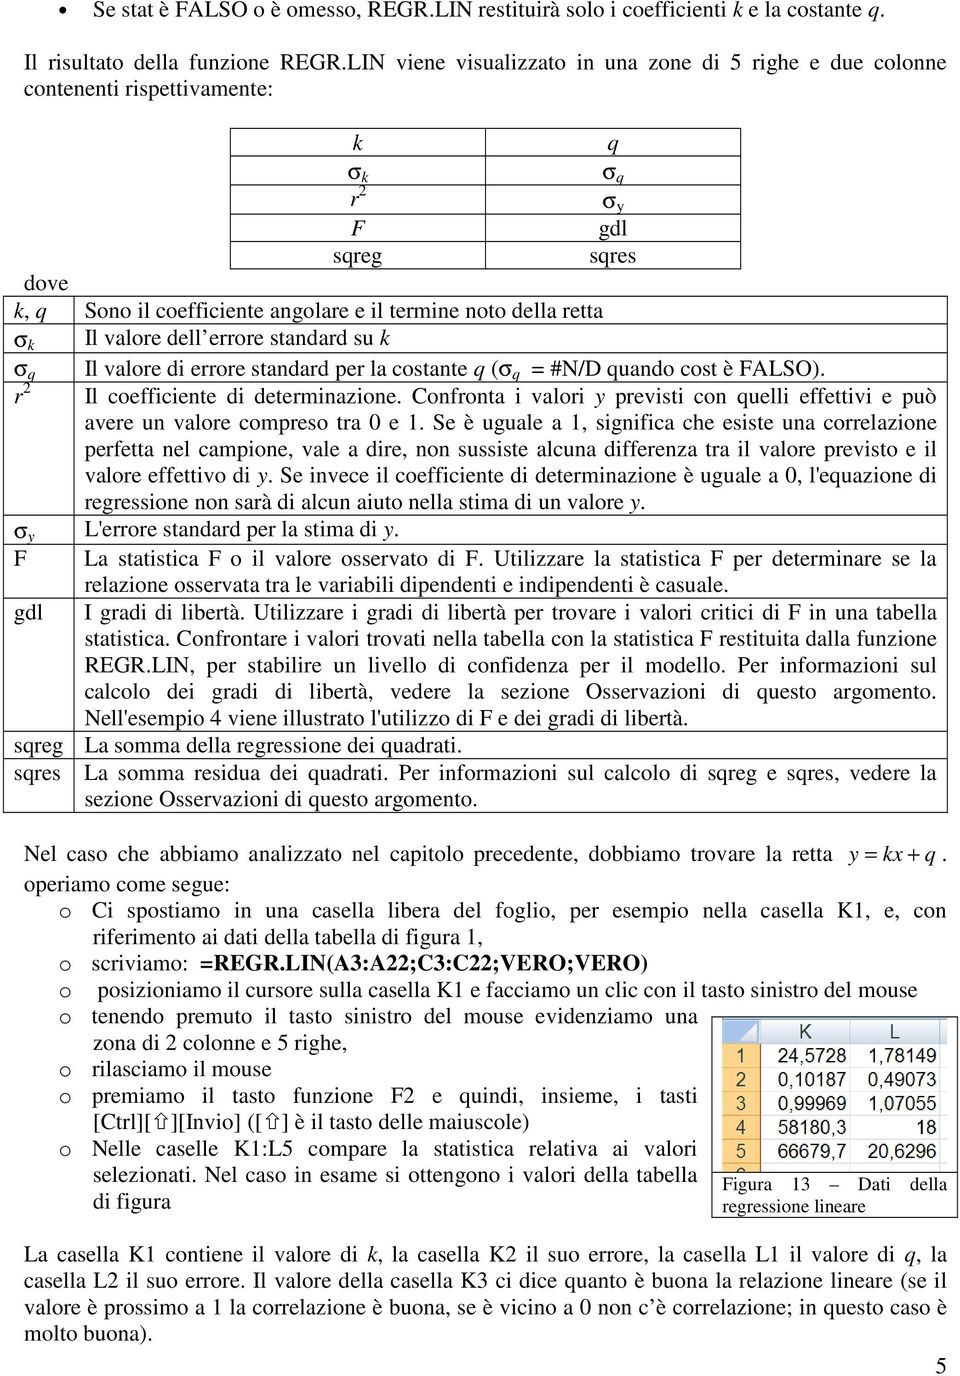 dell errore standard su k σ q Il valore di errore standard per la costante q (σ q = #N/D quando cost è FALSO). r 2 Il coefficiente di determinazione.